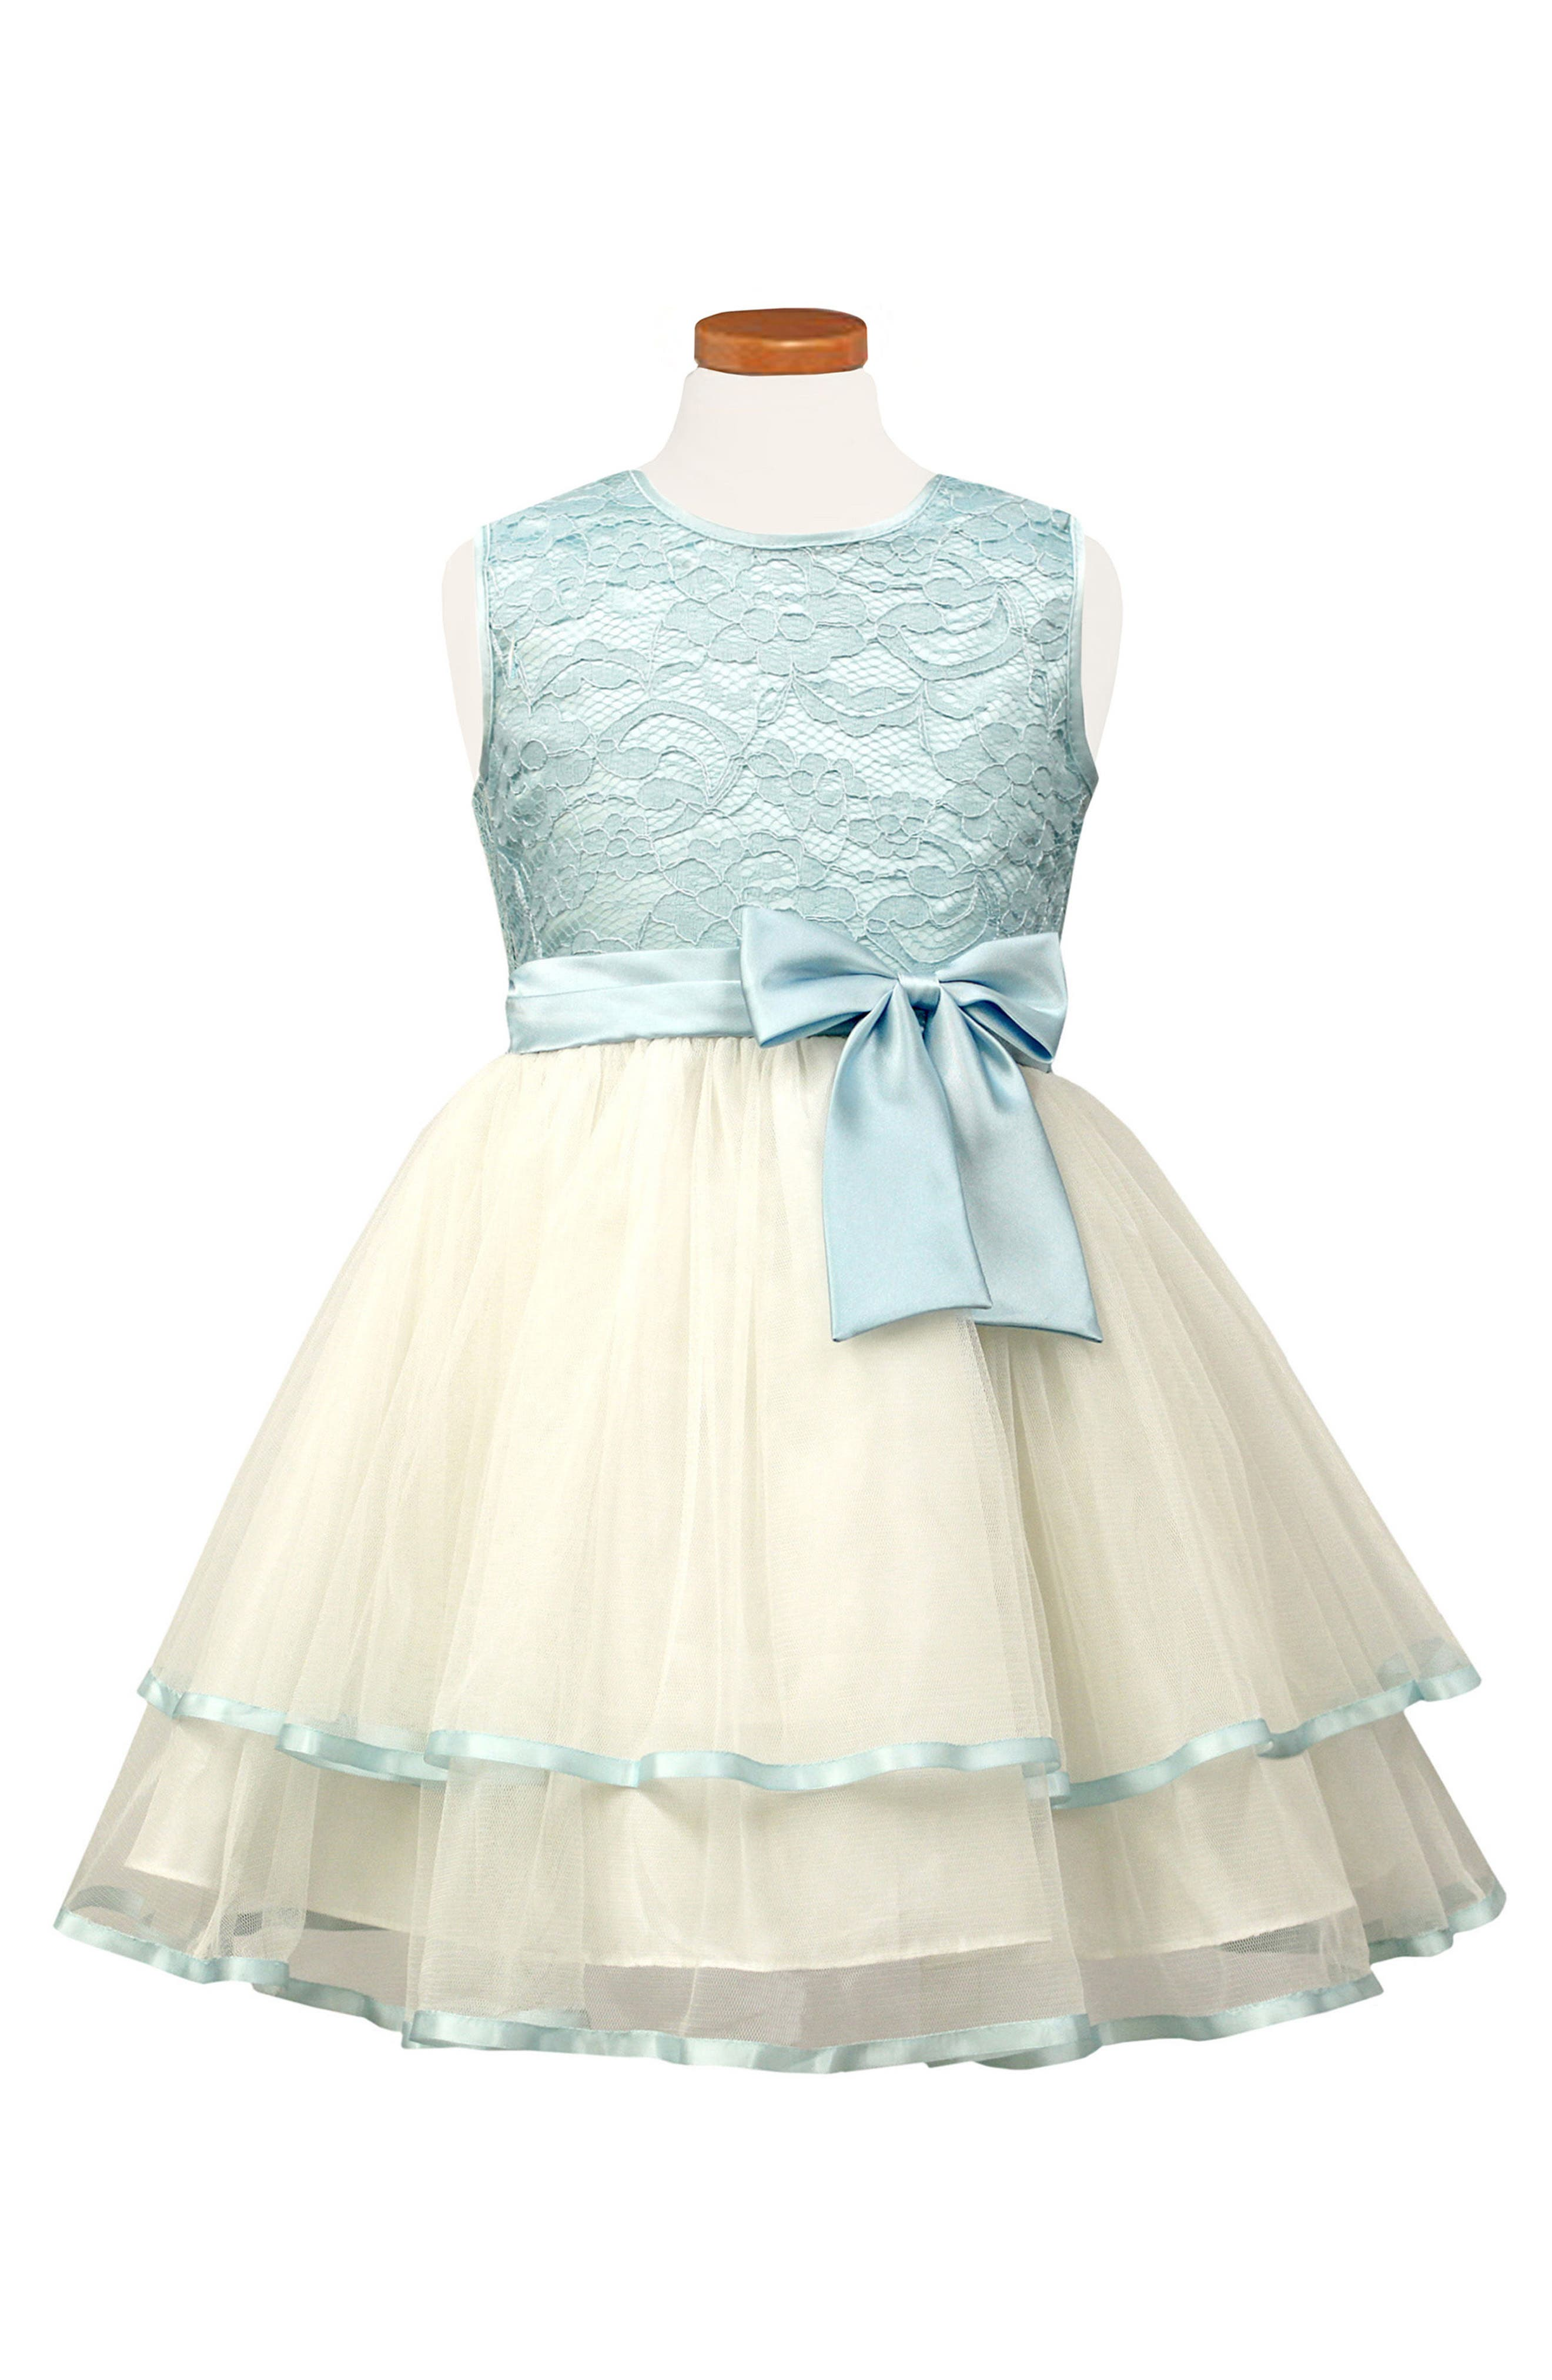 Tiered Lace & Tulle Dress,                         Main,                         color, 431